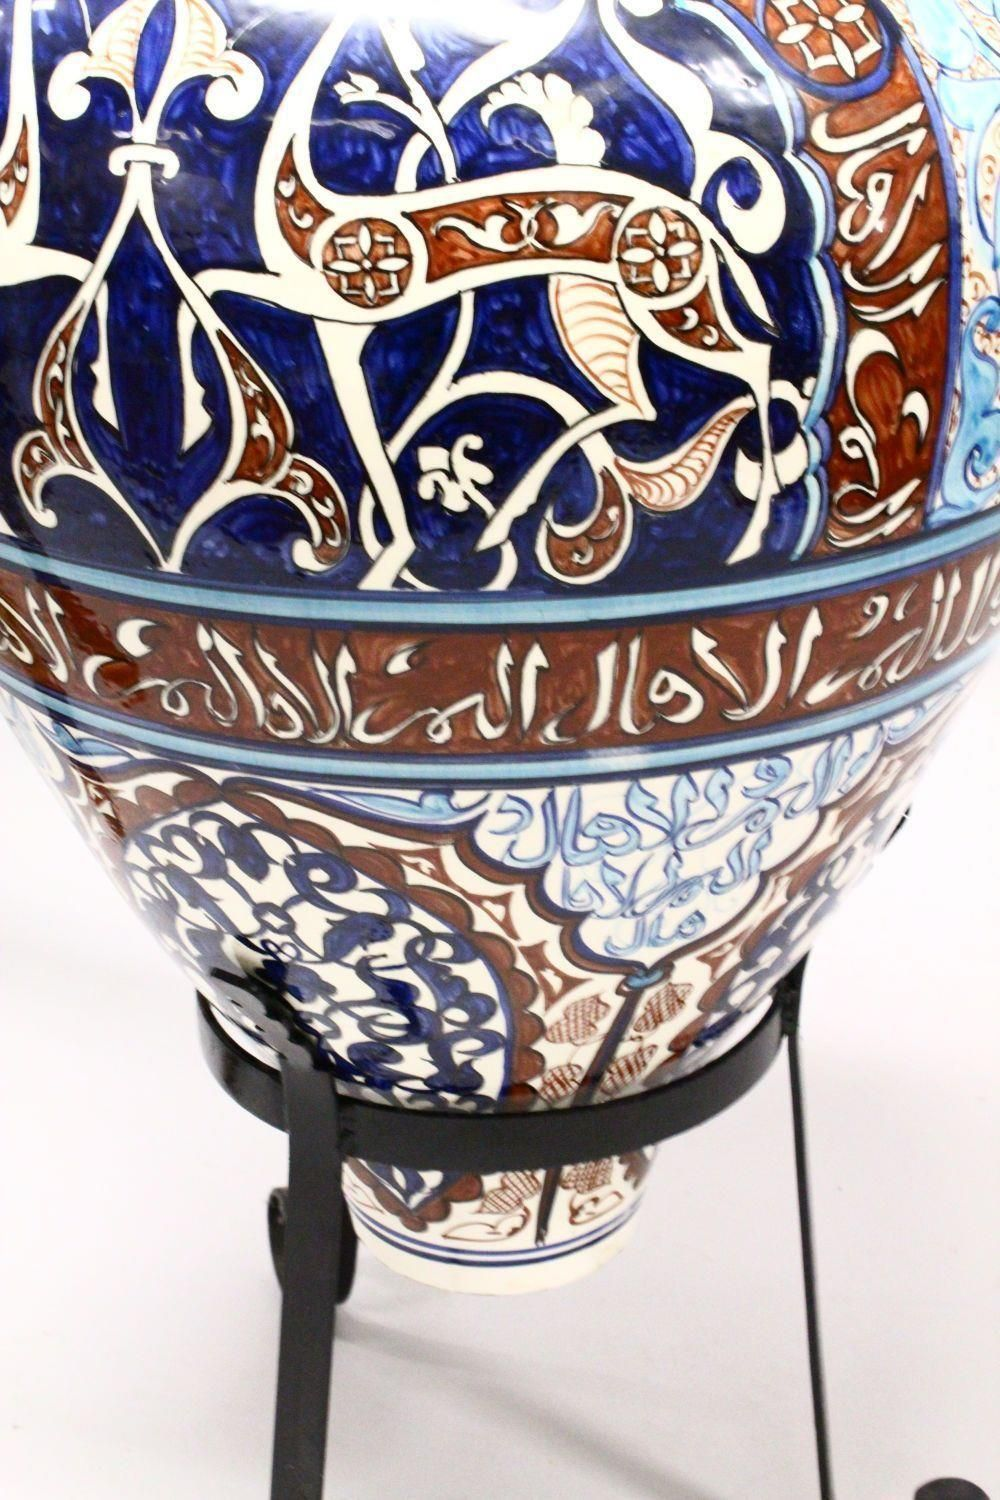 A HUGE 19TH CENTURY ISLAMIC HISPANO MORESQUE POTTERY ALHAMBRA STYLE POTTERY VASE & STAND, possibly - Image 6 of 10